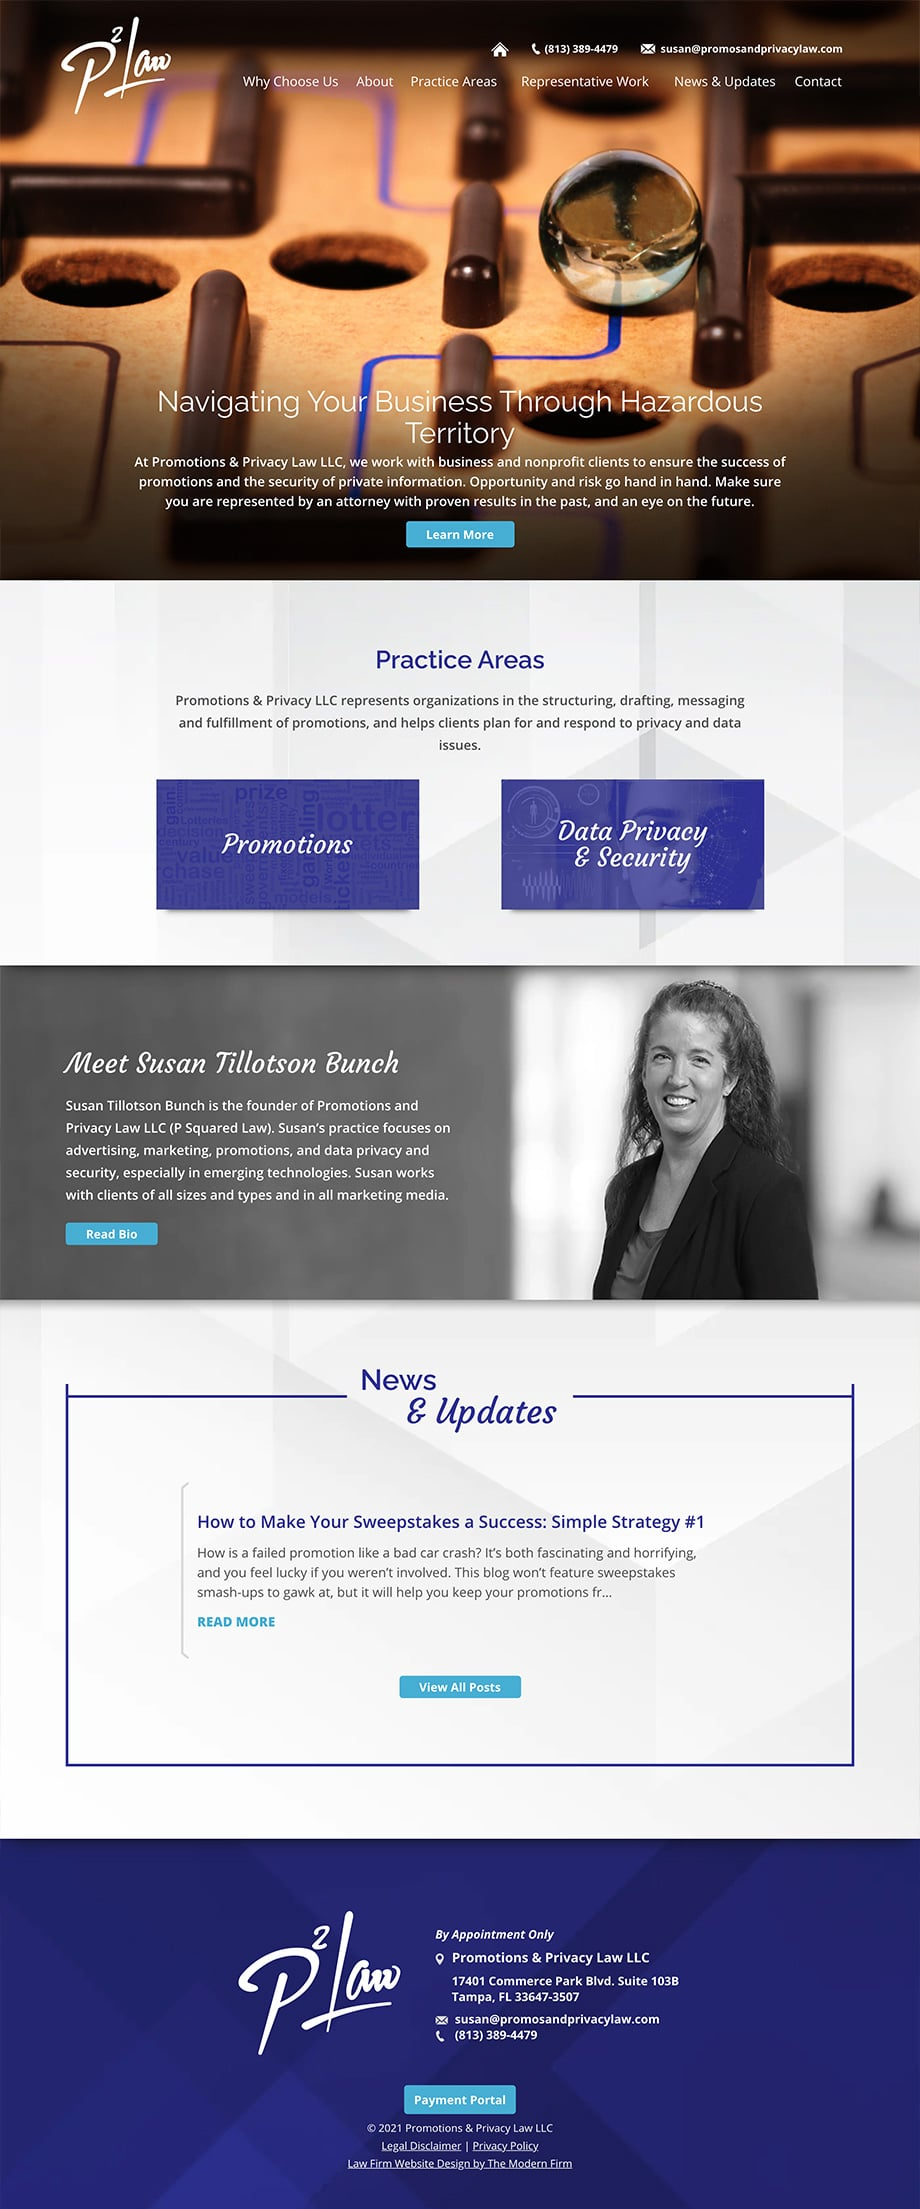 Law Firm Website Design for Promotions & Privacy Law LLC